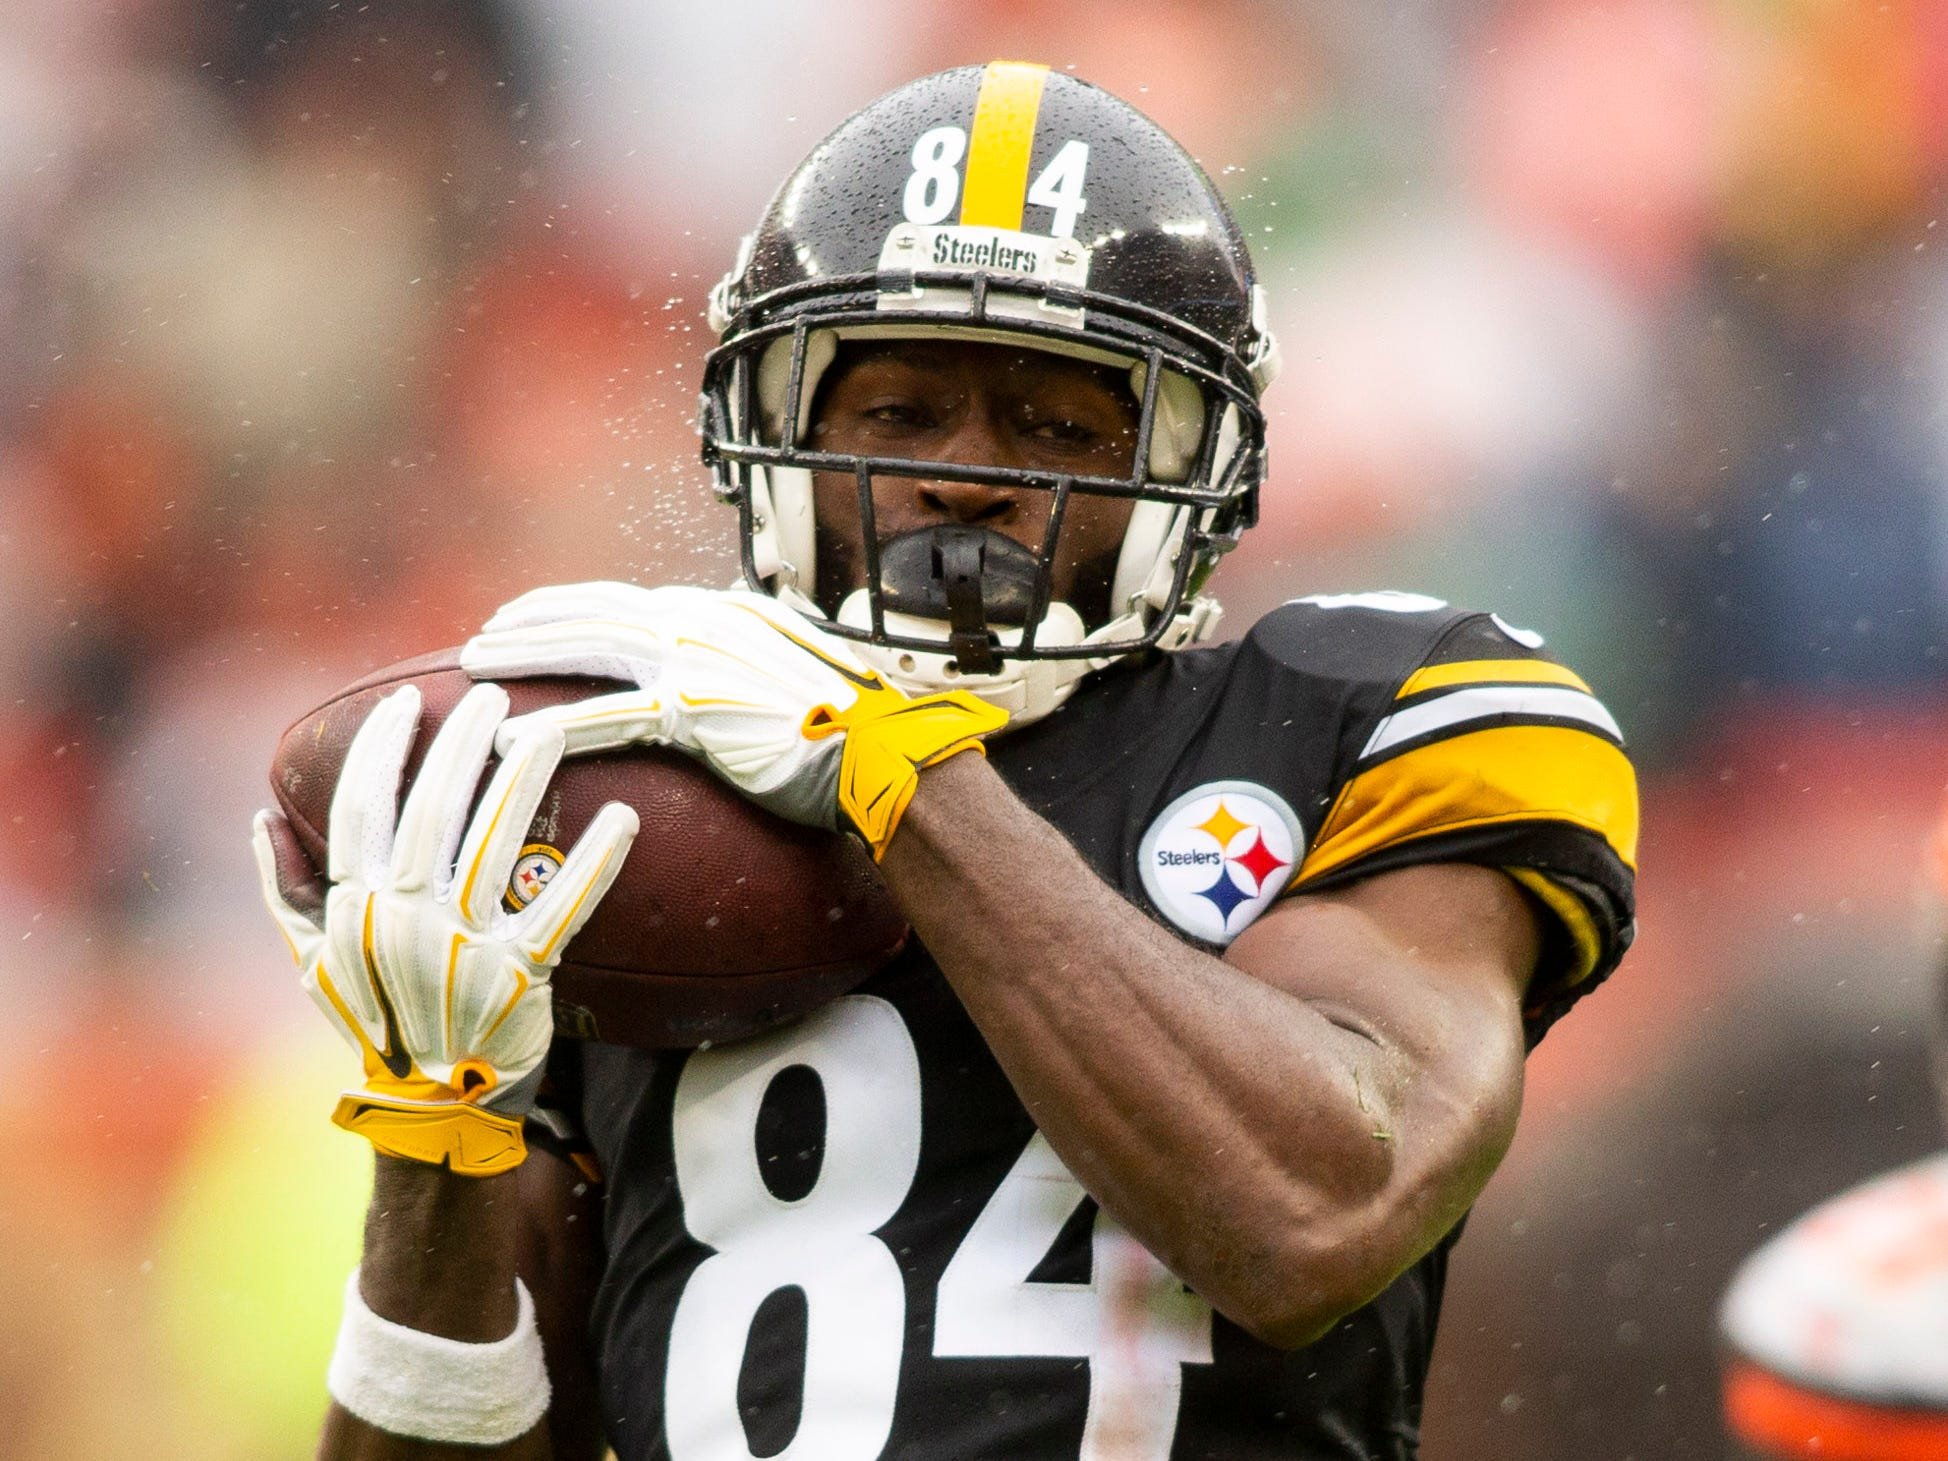 Pittsburgh Steelers wide receiver Antonio Brown (84) makes a reception against Cleveland Browns defensive back Terrance Mitchell (39) during the fourth quarter at FirstEnergy Stadium.